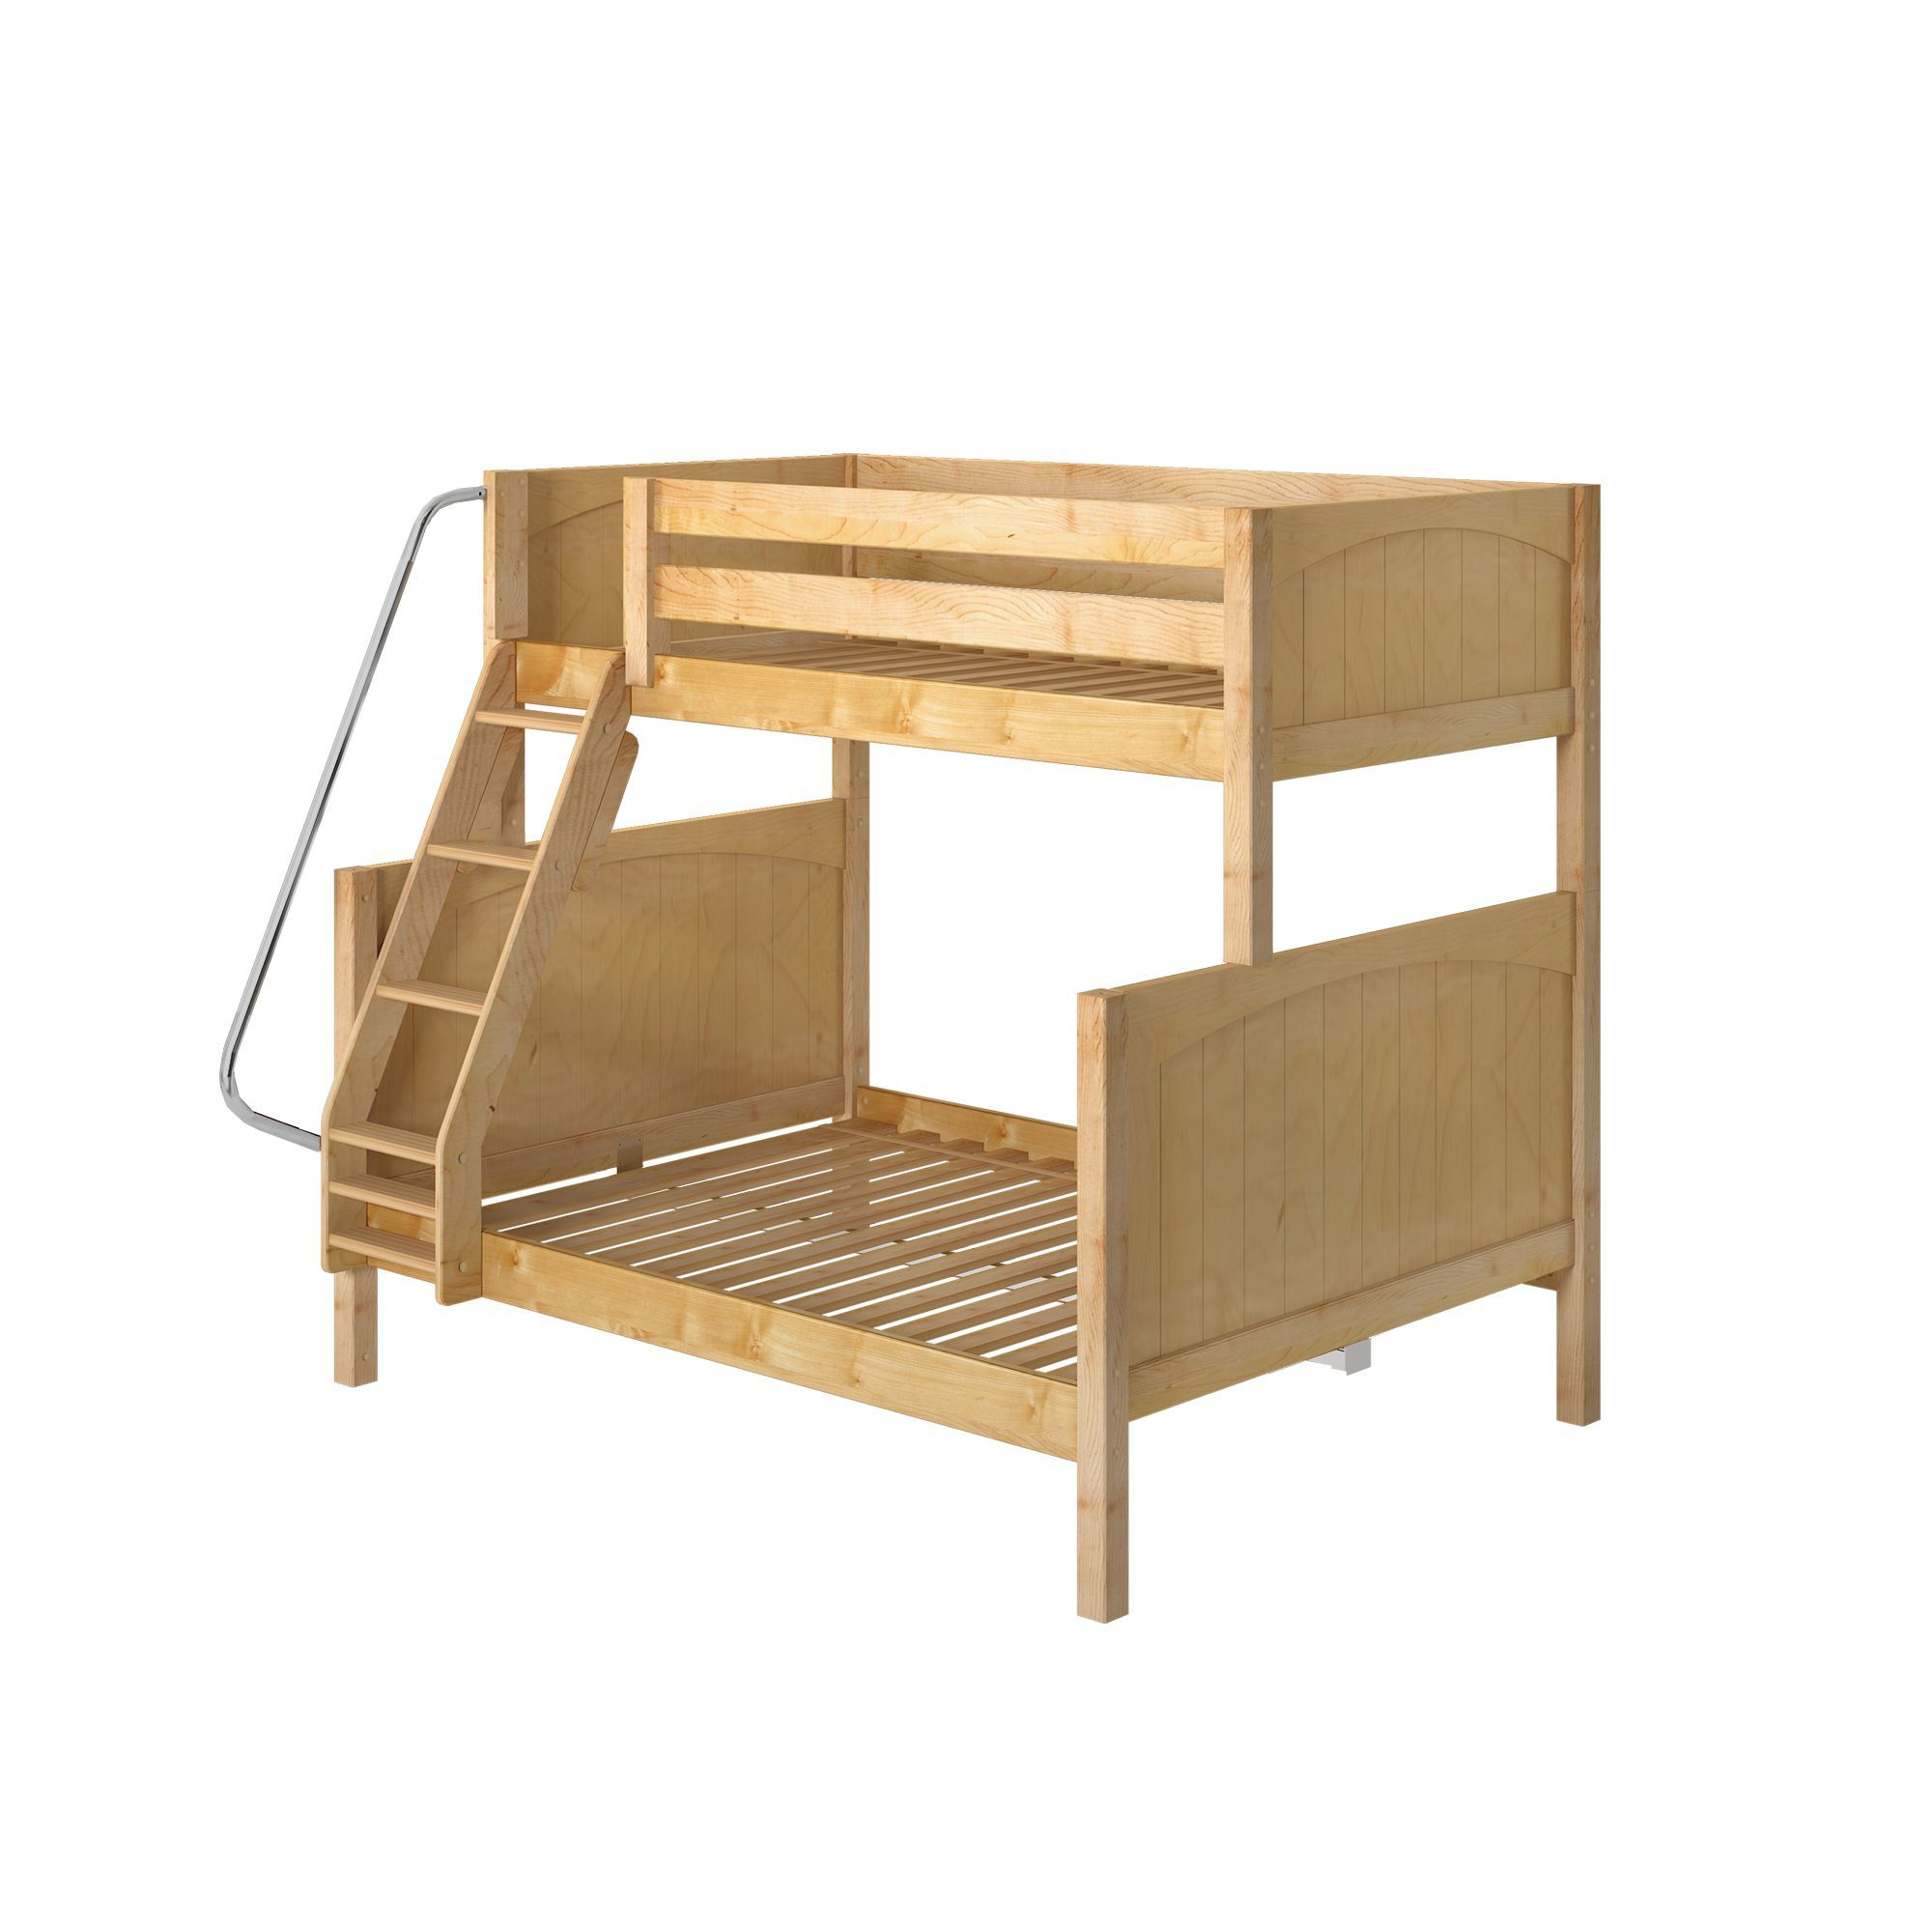 26 High Twin over Full Bunk Bed   Natural / Panel / Angled Ladder Front